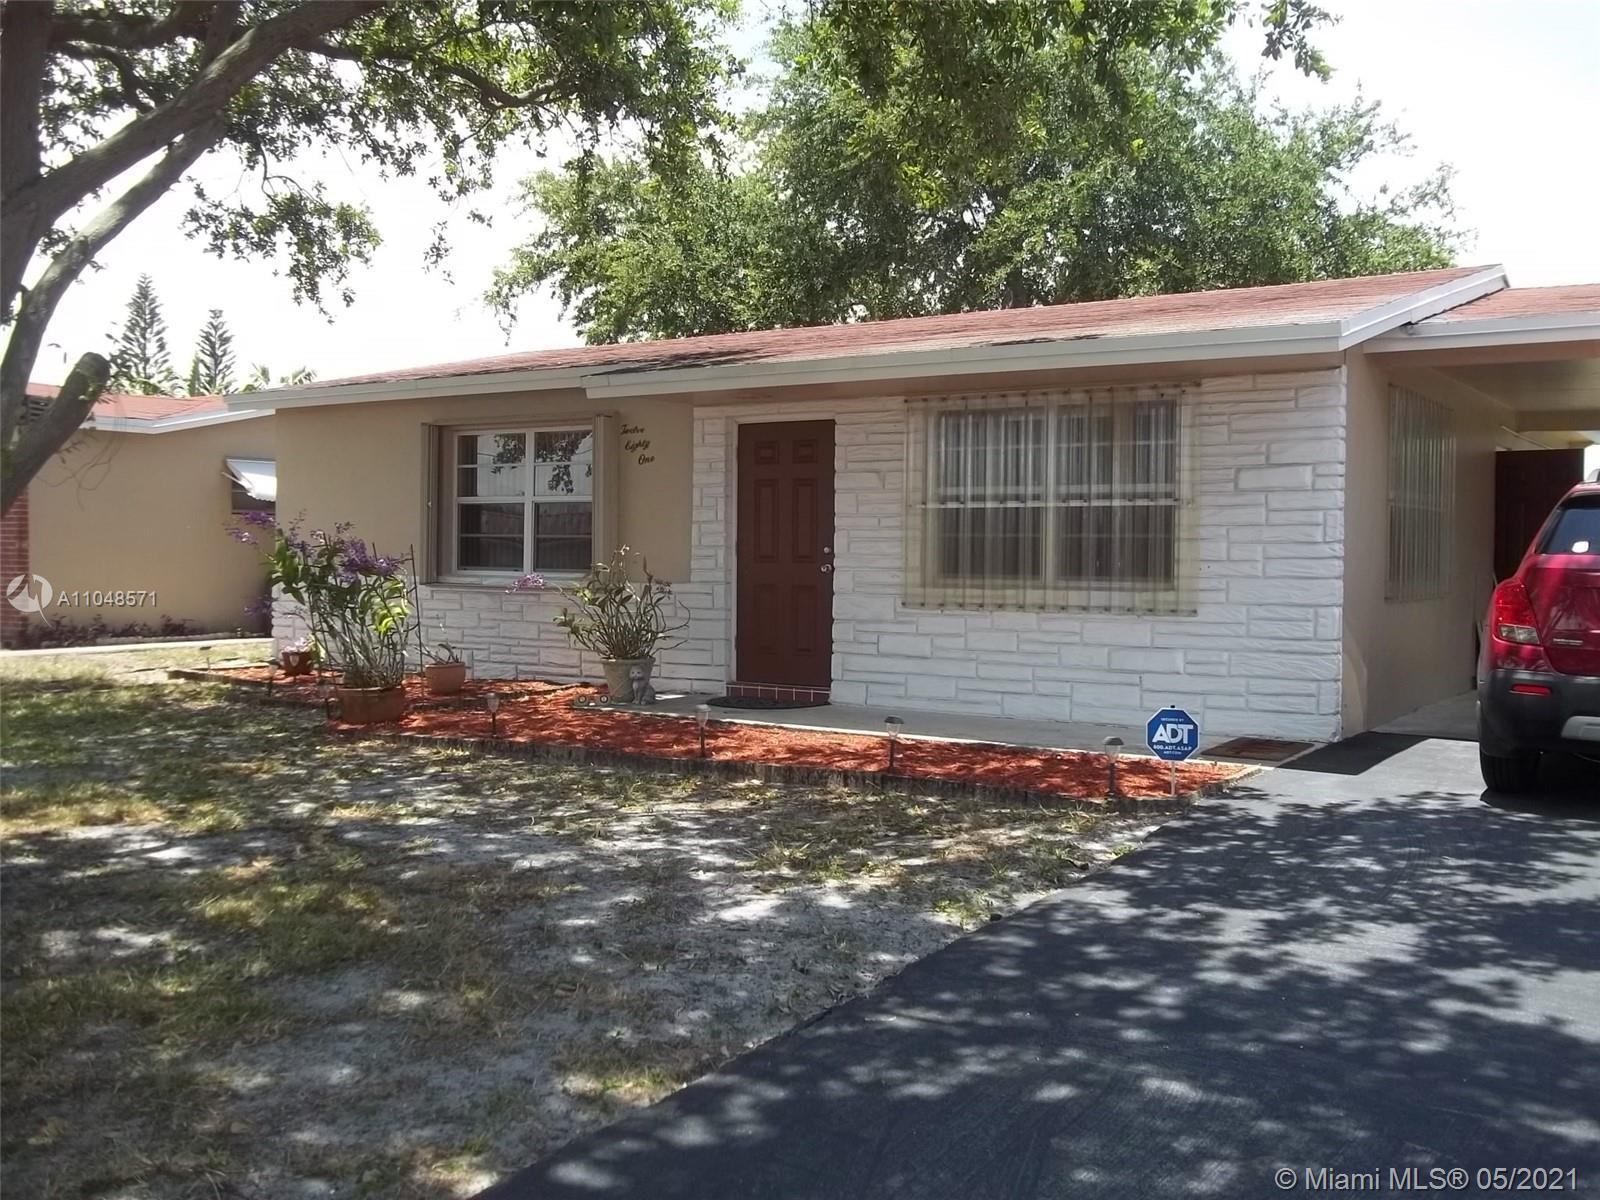 BEST PRICE IN THE AREA ^^^^YOUR BUYERS WILL LOVE THIS FANTASTIC SINGLE FAMILY HOME WITH MATURE OAK T